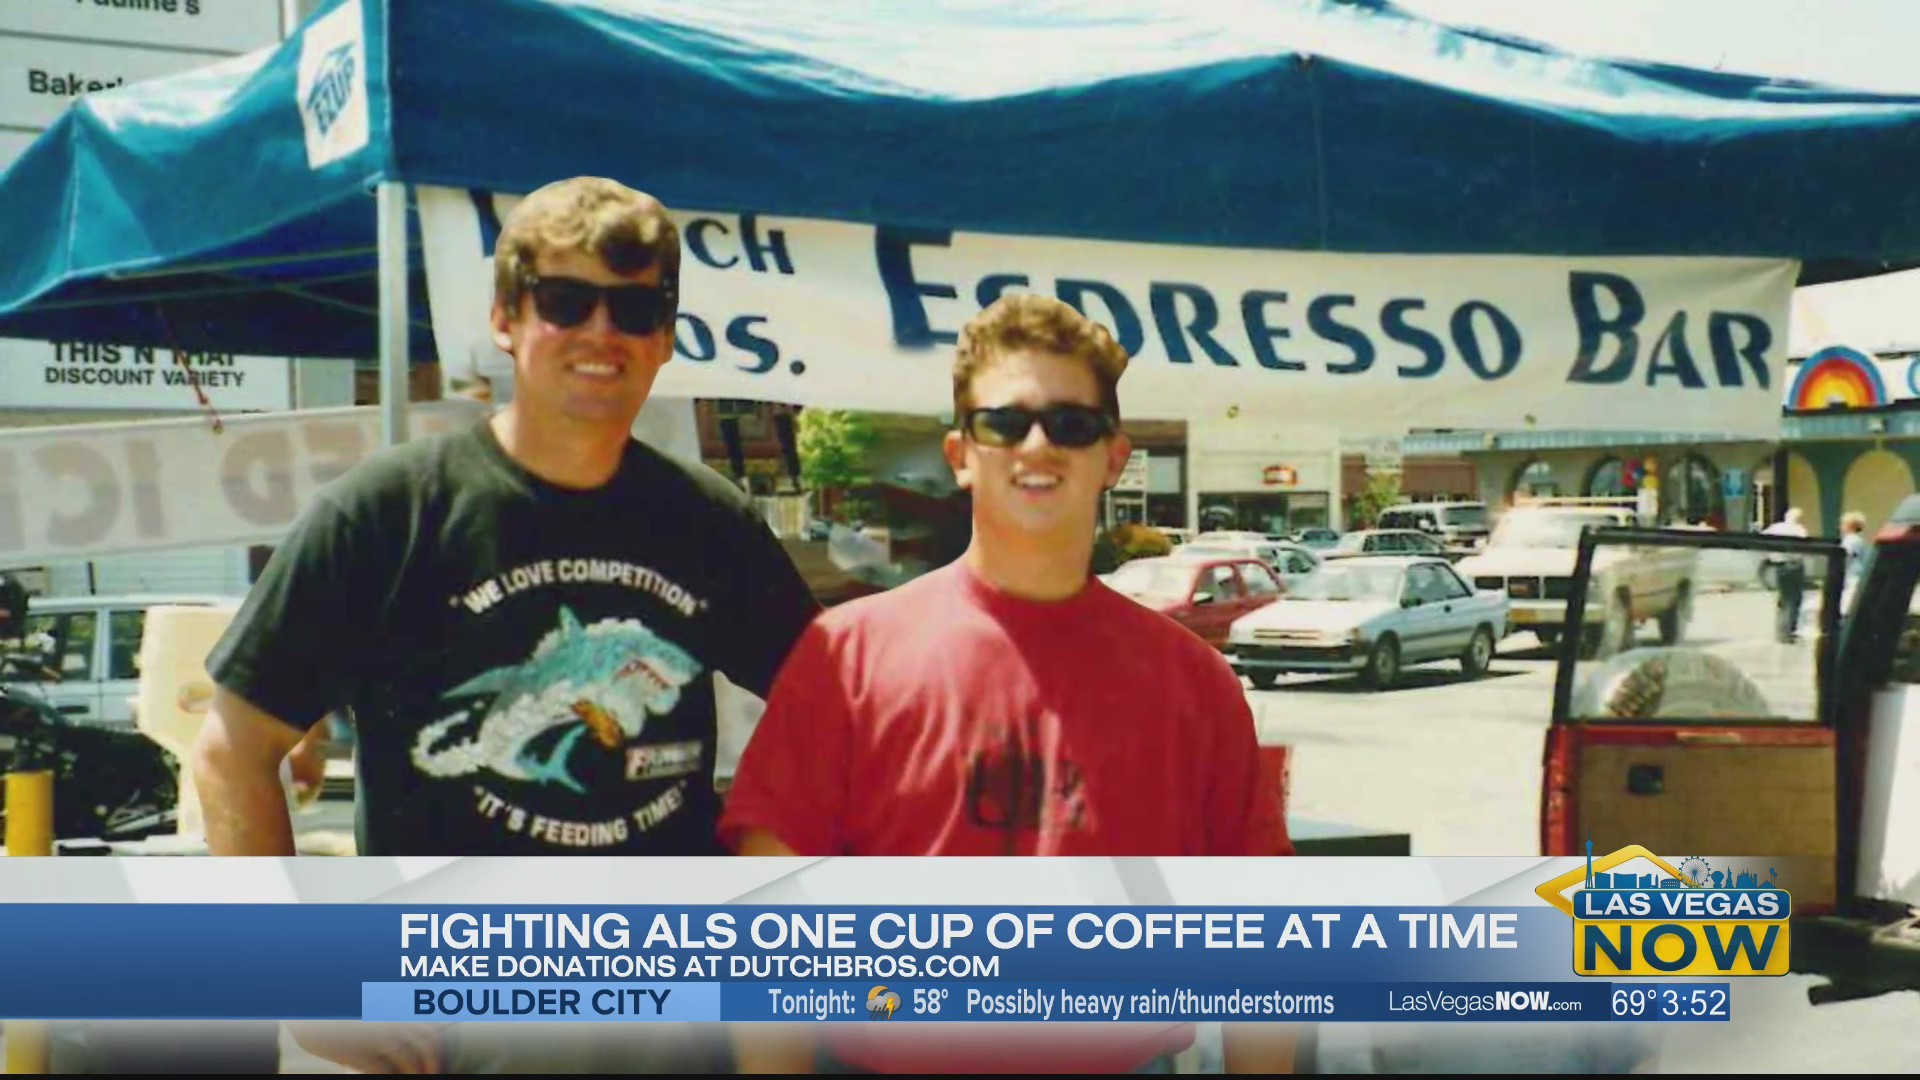 Fighting ALS one cup of coffee at a time